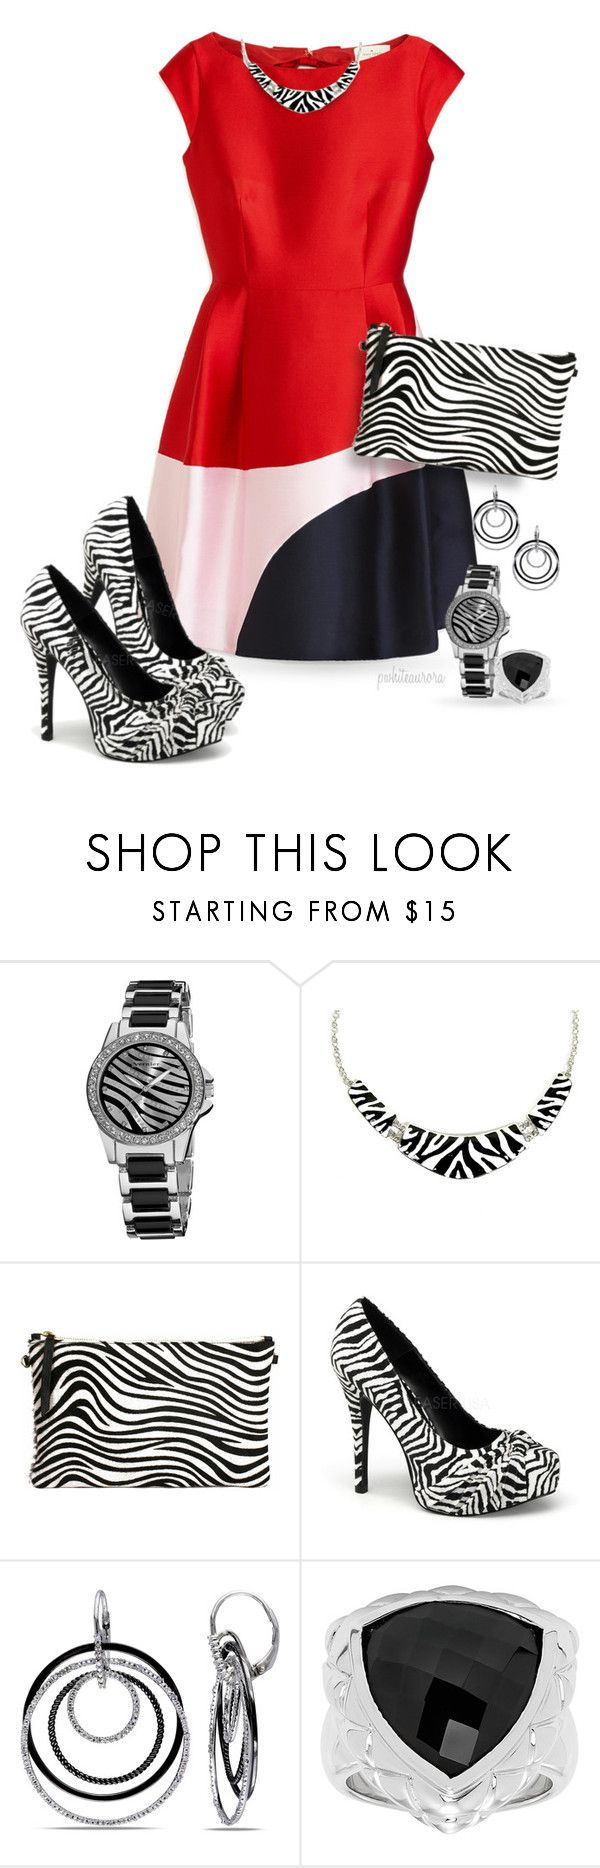 """Zebra Print Pumps, Clutch & Jewelry"" by pwhiteaurora ❤ liked on Polyvore featuring Kate Spade, Vernier, Ice, katespade, colorblock, zebra, animalprint and platformpumps"